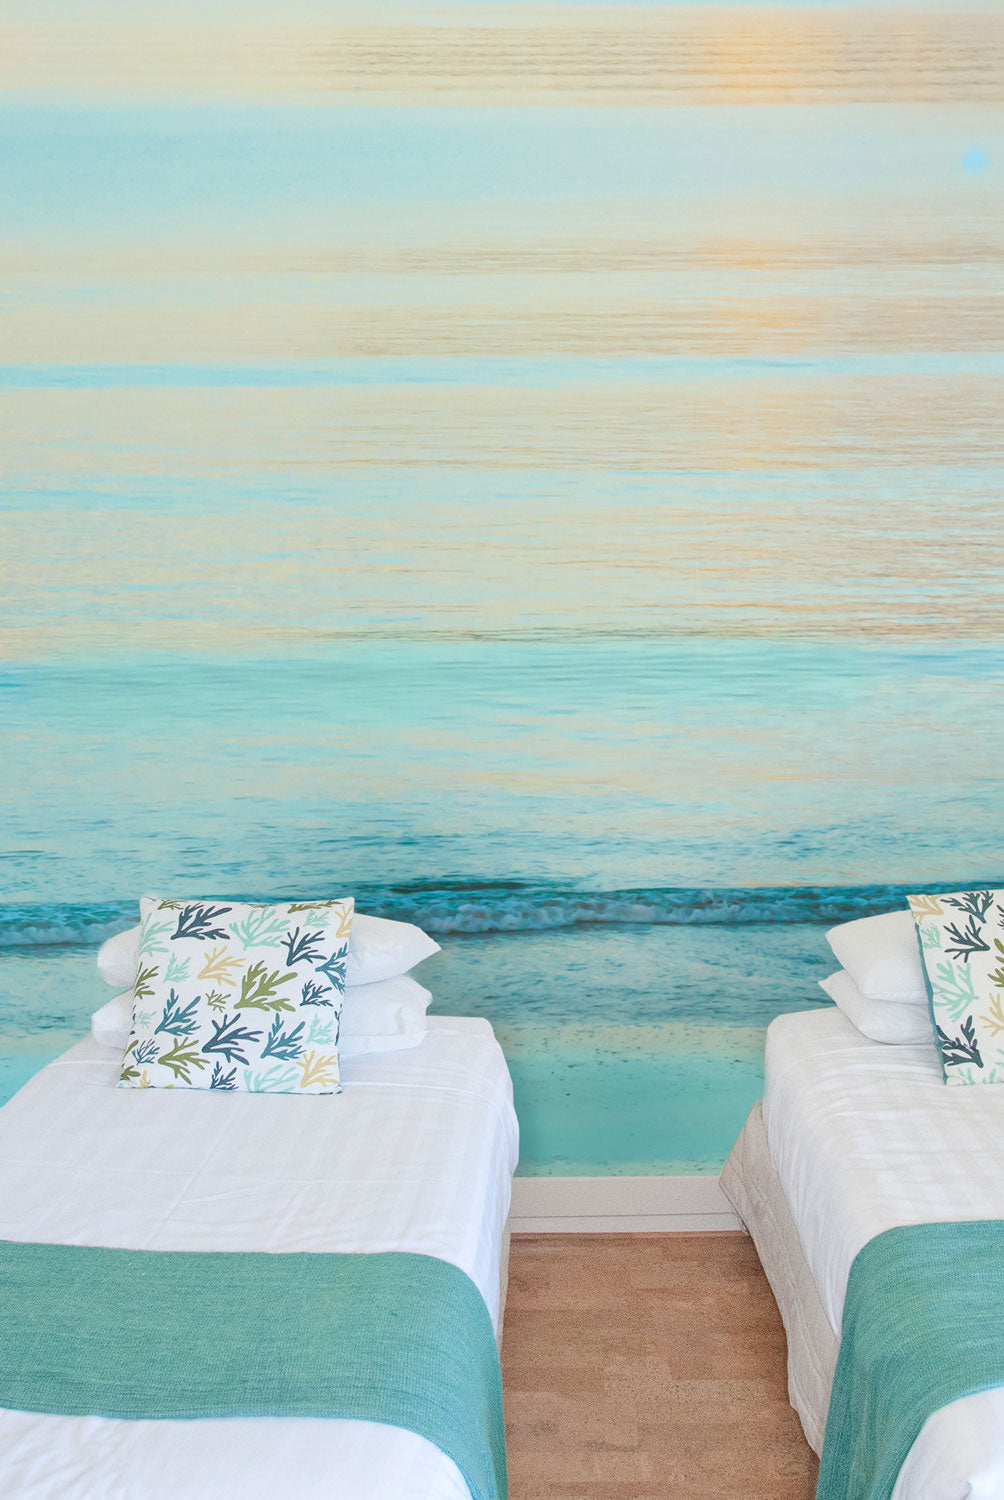 Sunset Shoreline | Surfing Sea Ocean Wall Mural by Back to the Wall